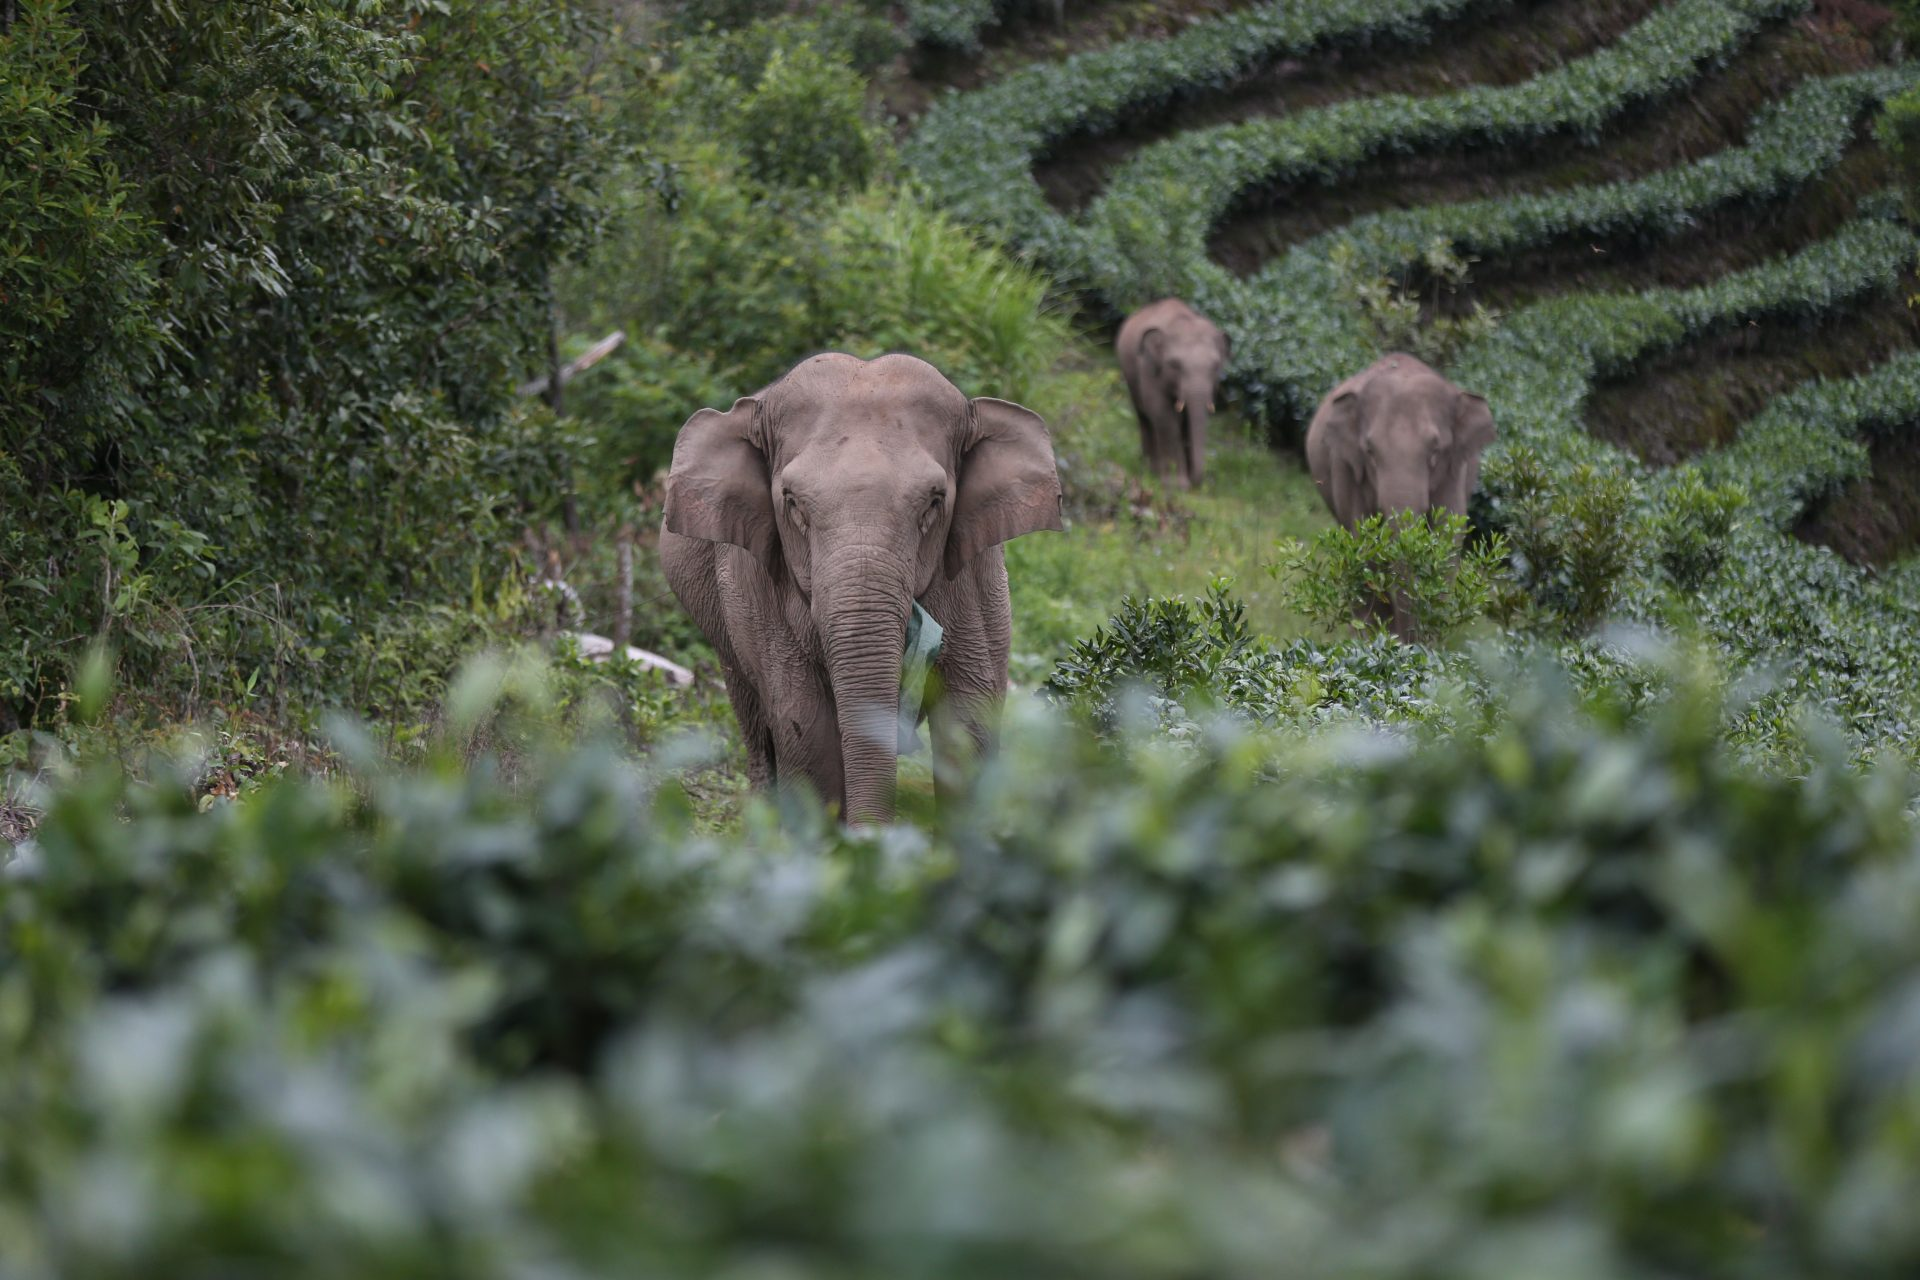 They're heading home: 15 elephants and their mysterious, televised journey across China